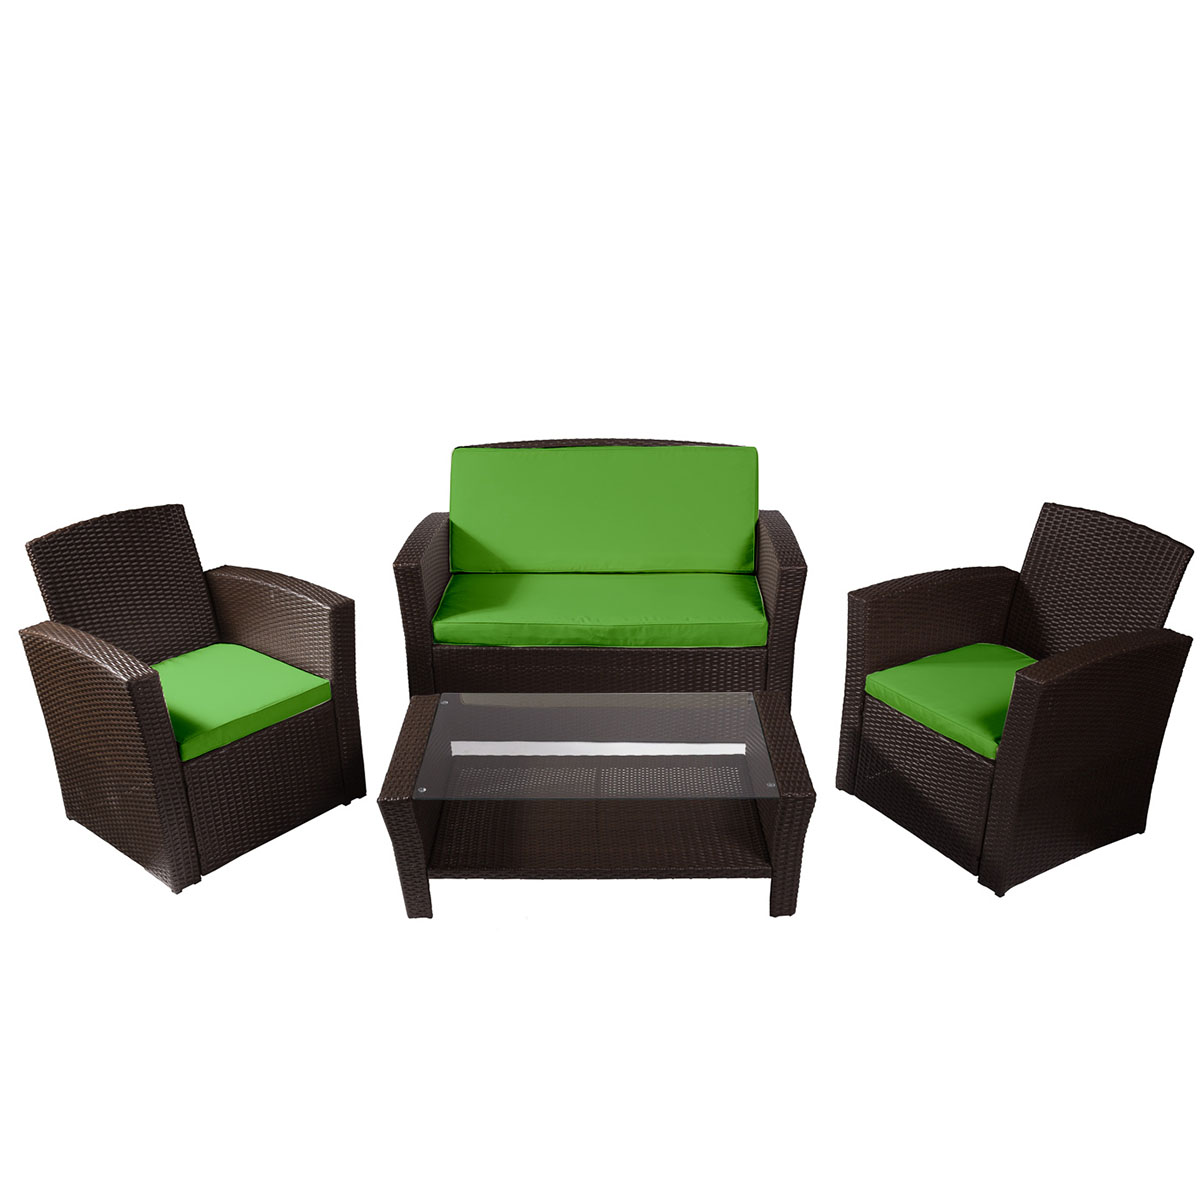 rotin salon largo couleur ebne et coussin vert salo. Black Bedroom Furniture Sets. Home Design Ideas